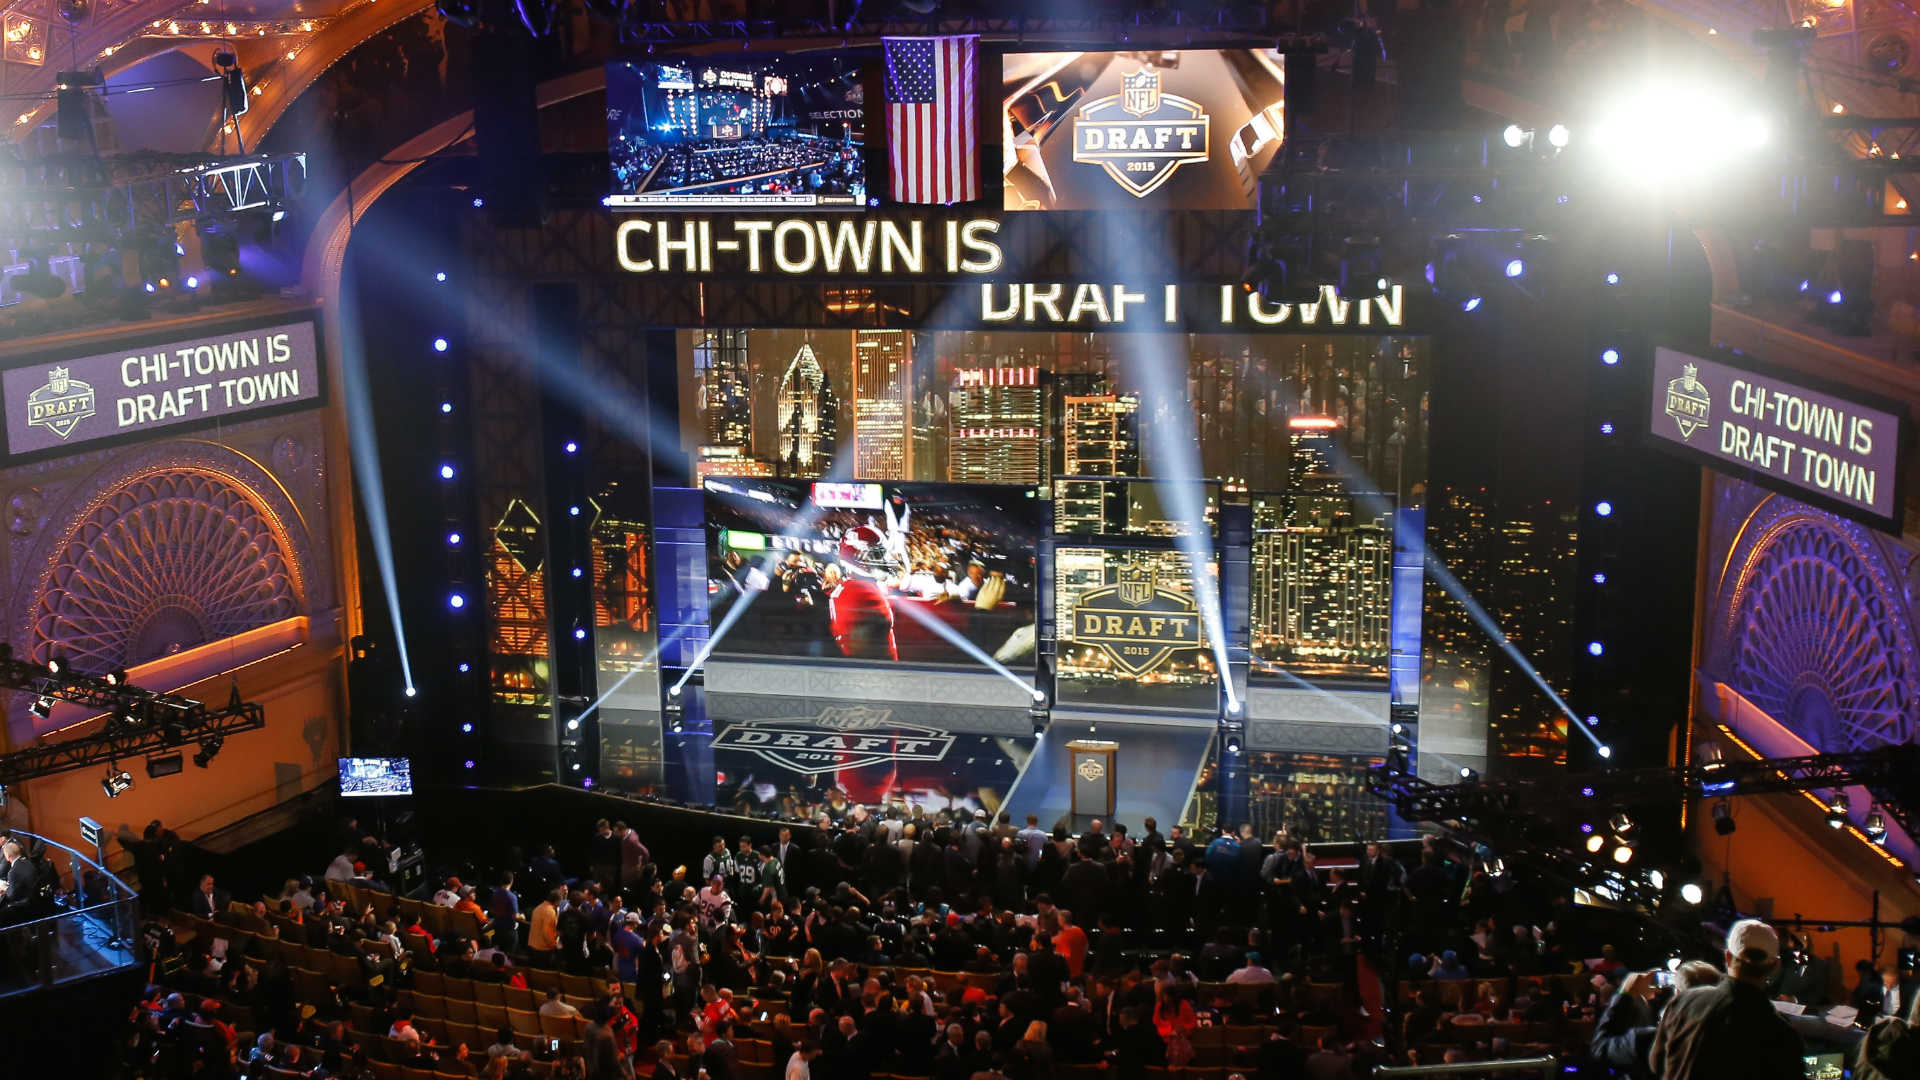 Nfl-draft-2015-042716-getty-ftrjpg_875v3n1e53hi19zzu1kyjkp6j